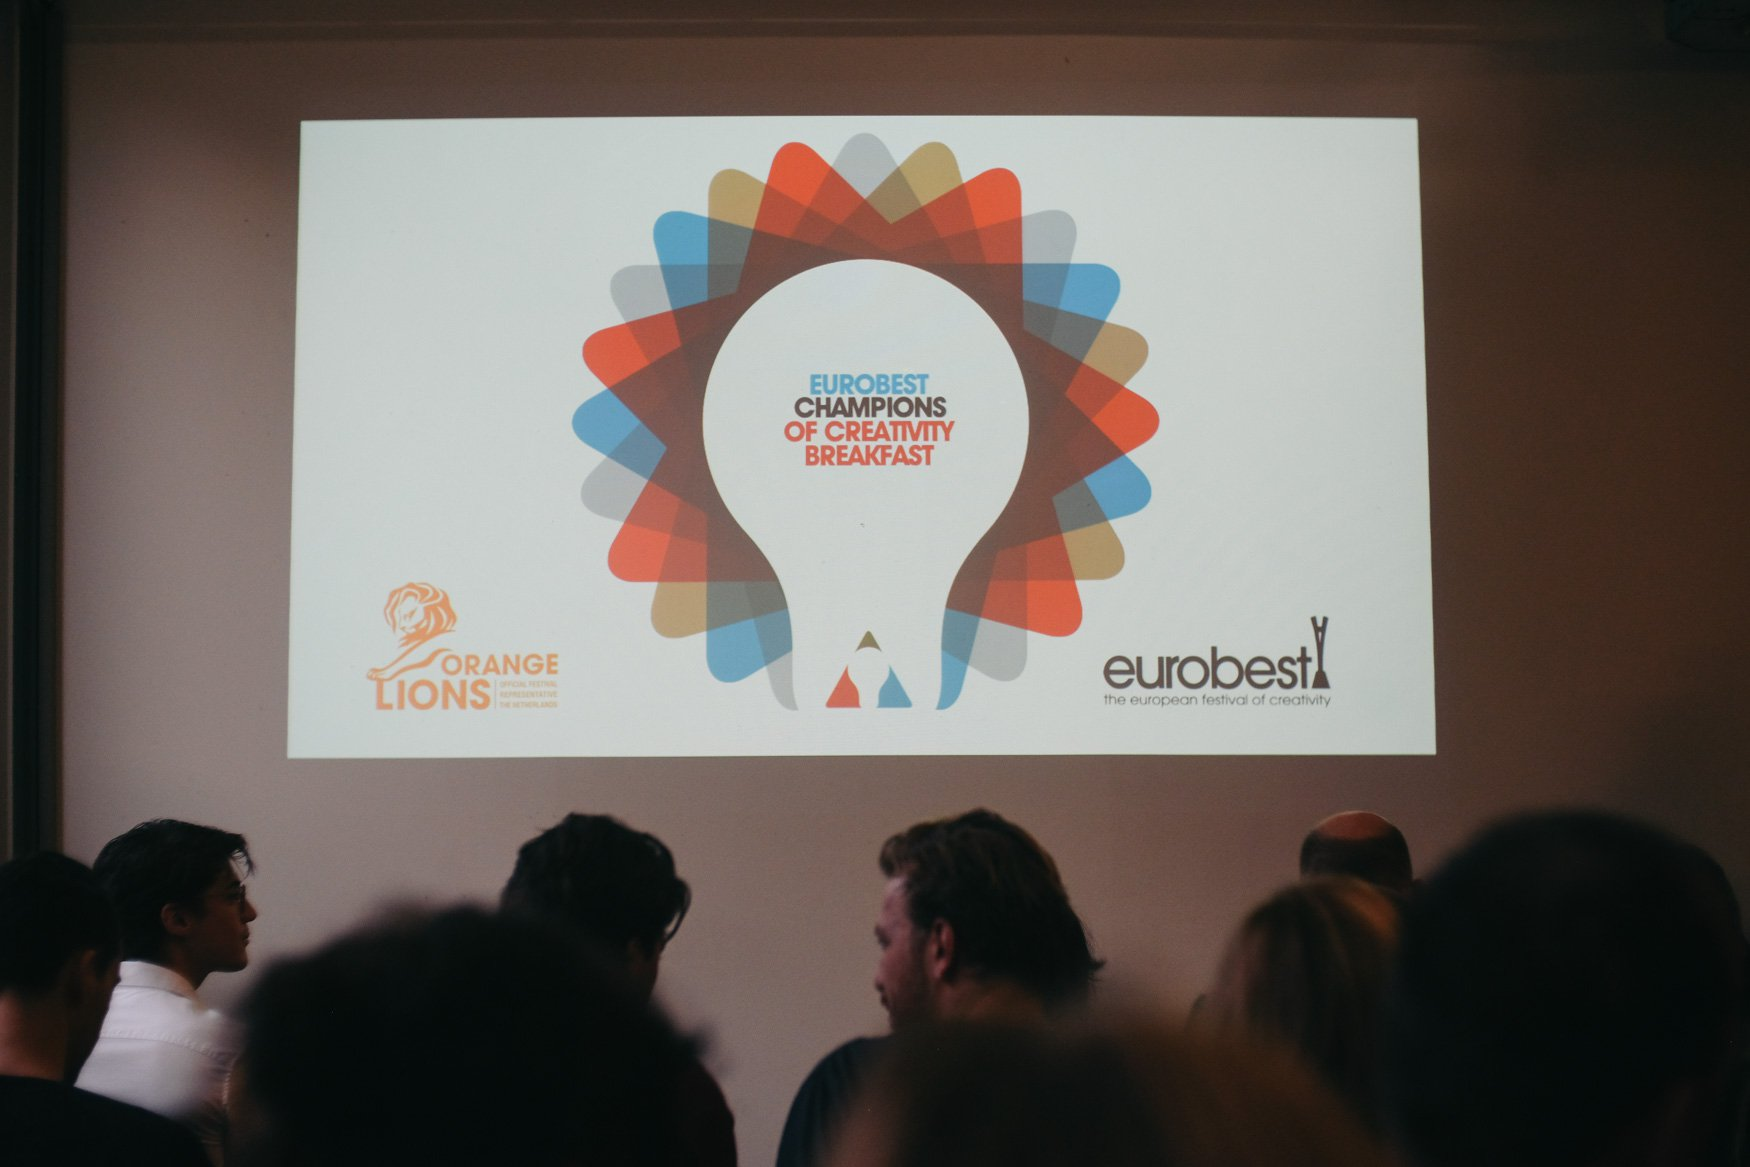 Eurobest Champions of Creativity Breakfast